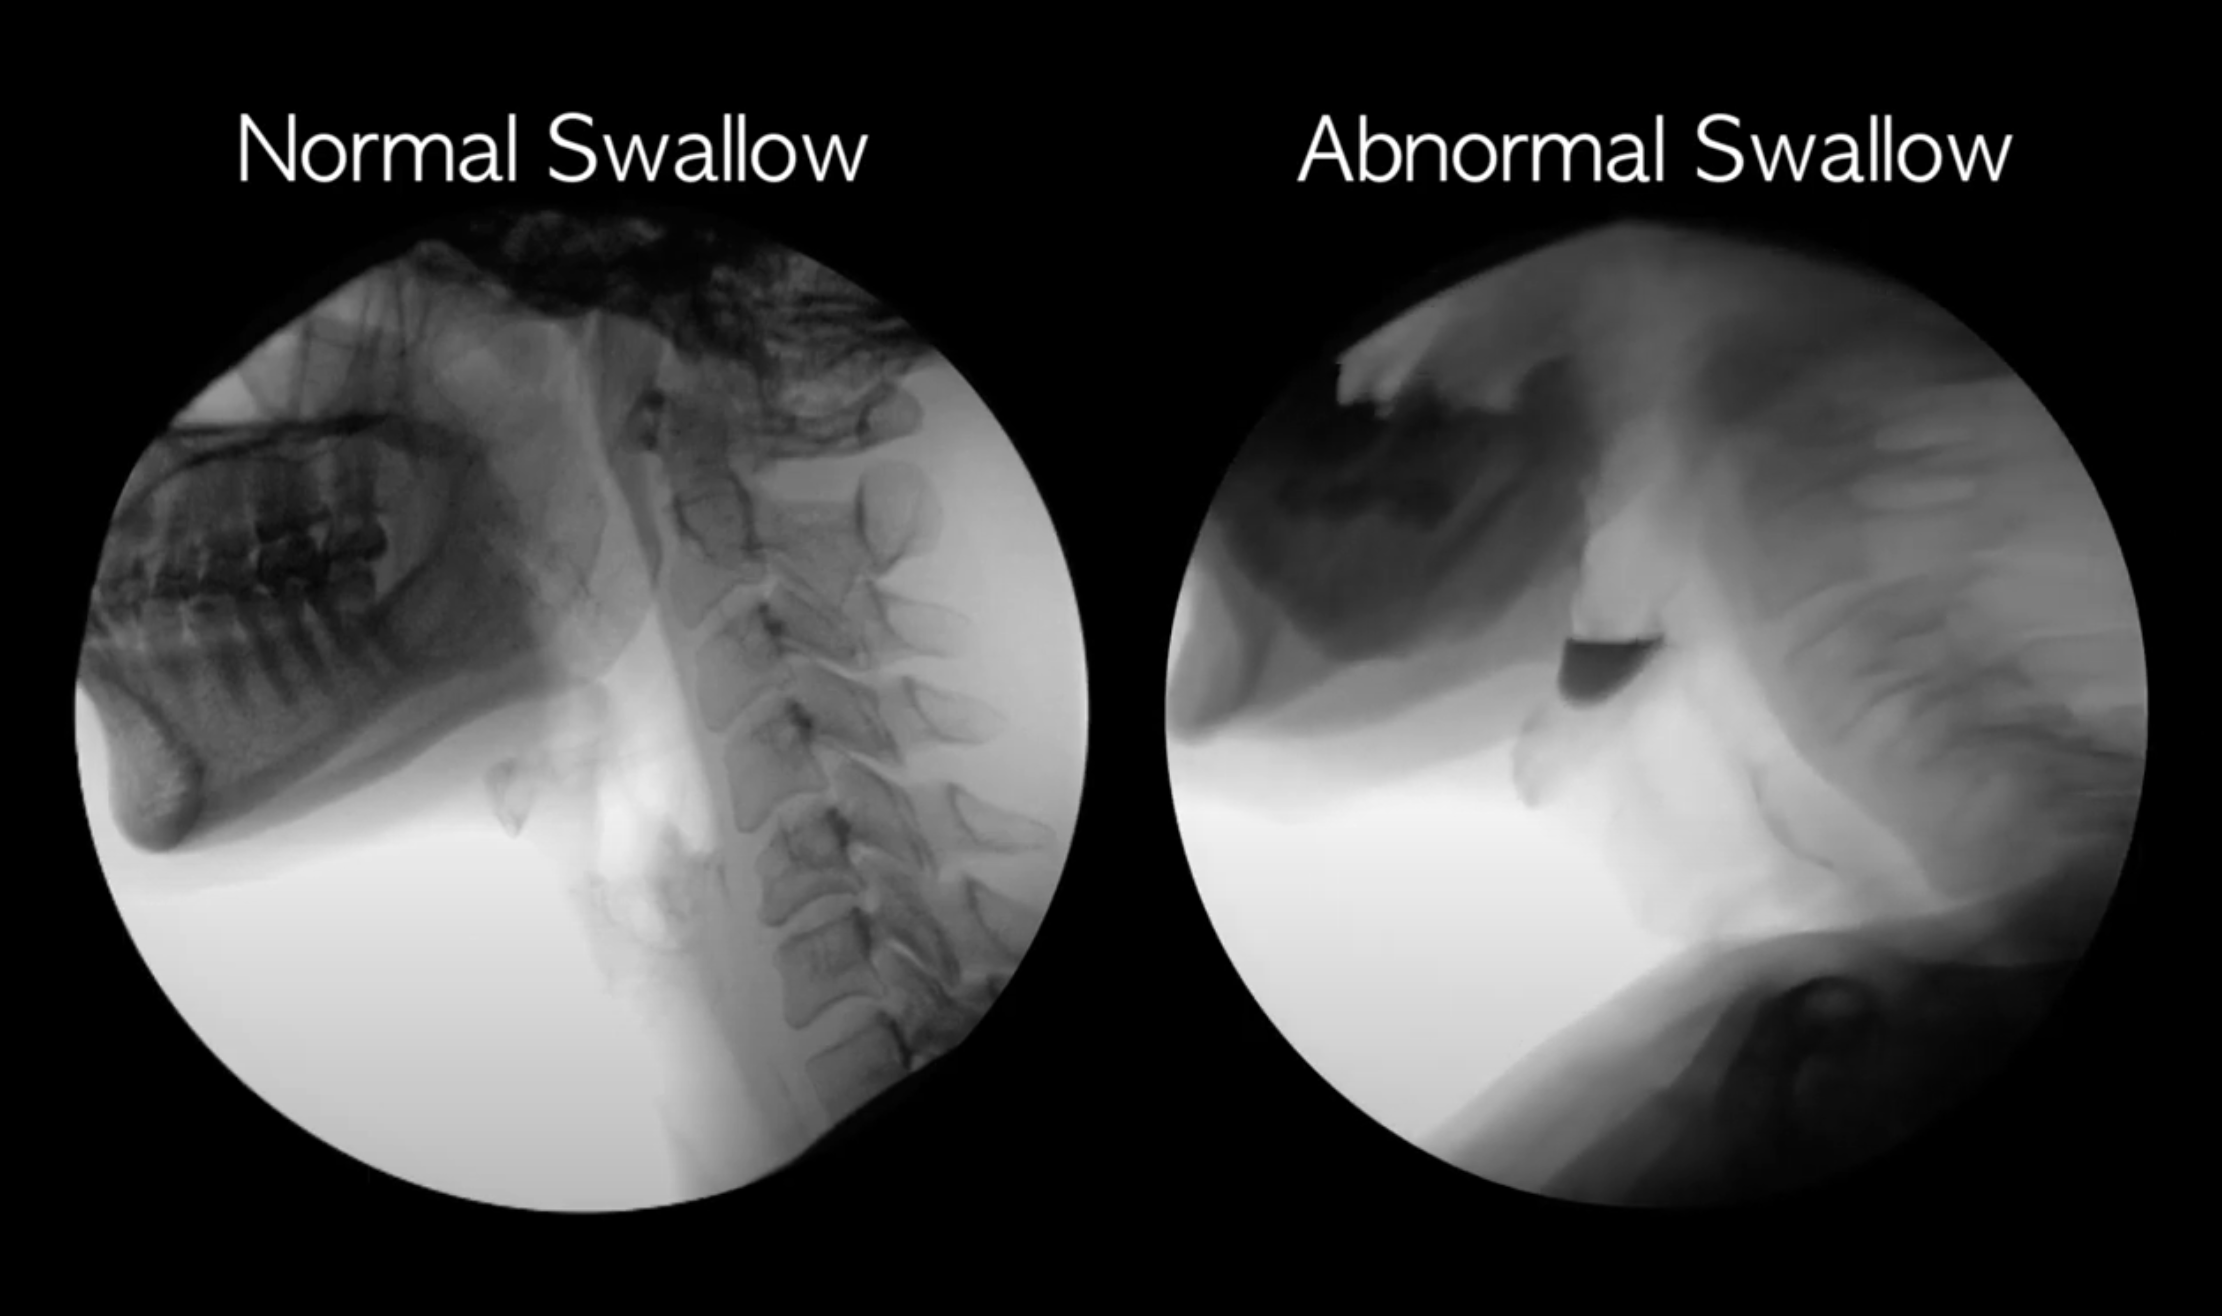 Abnormal Swallowing